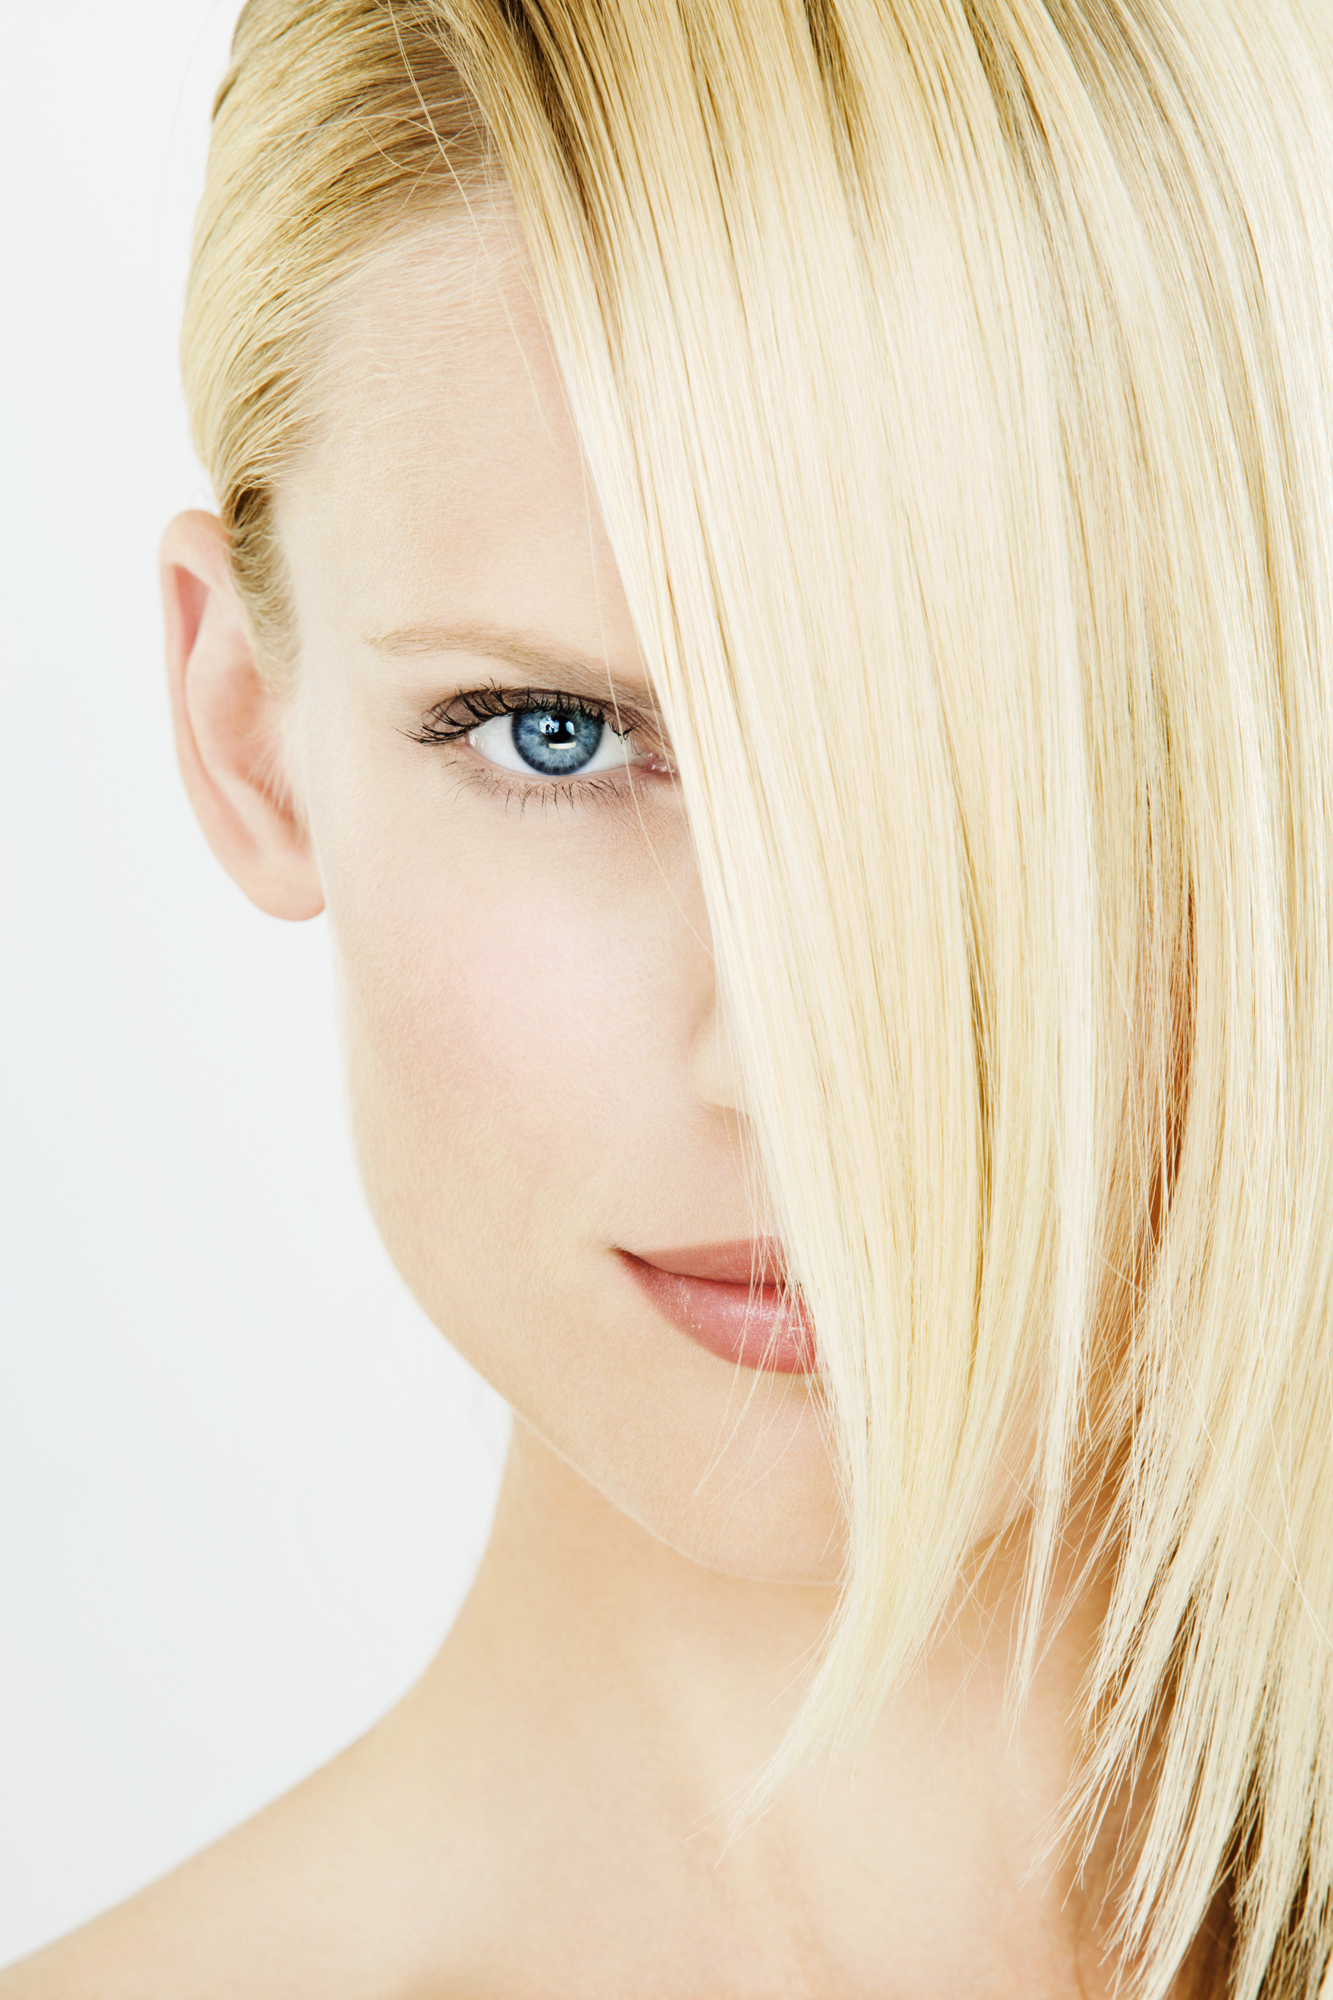 Woman with bleached hair combed over face